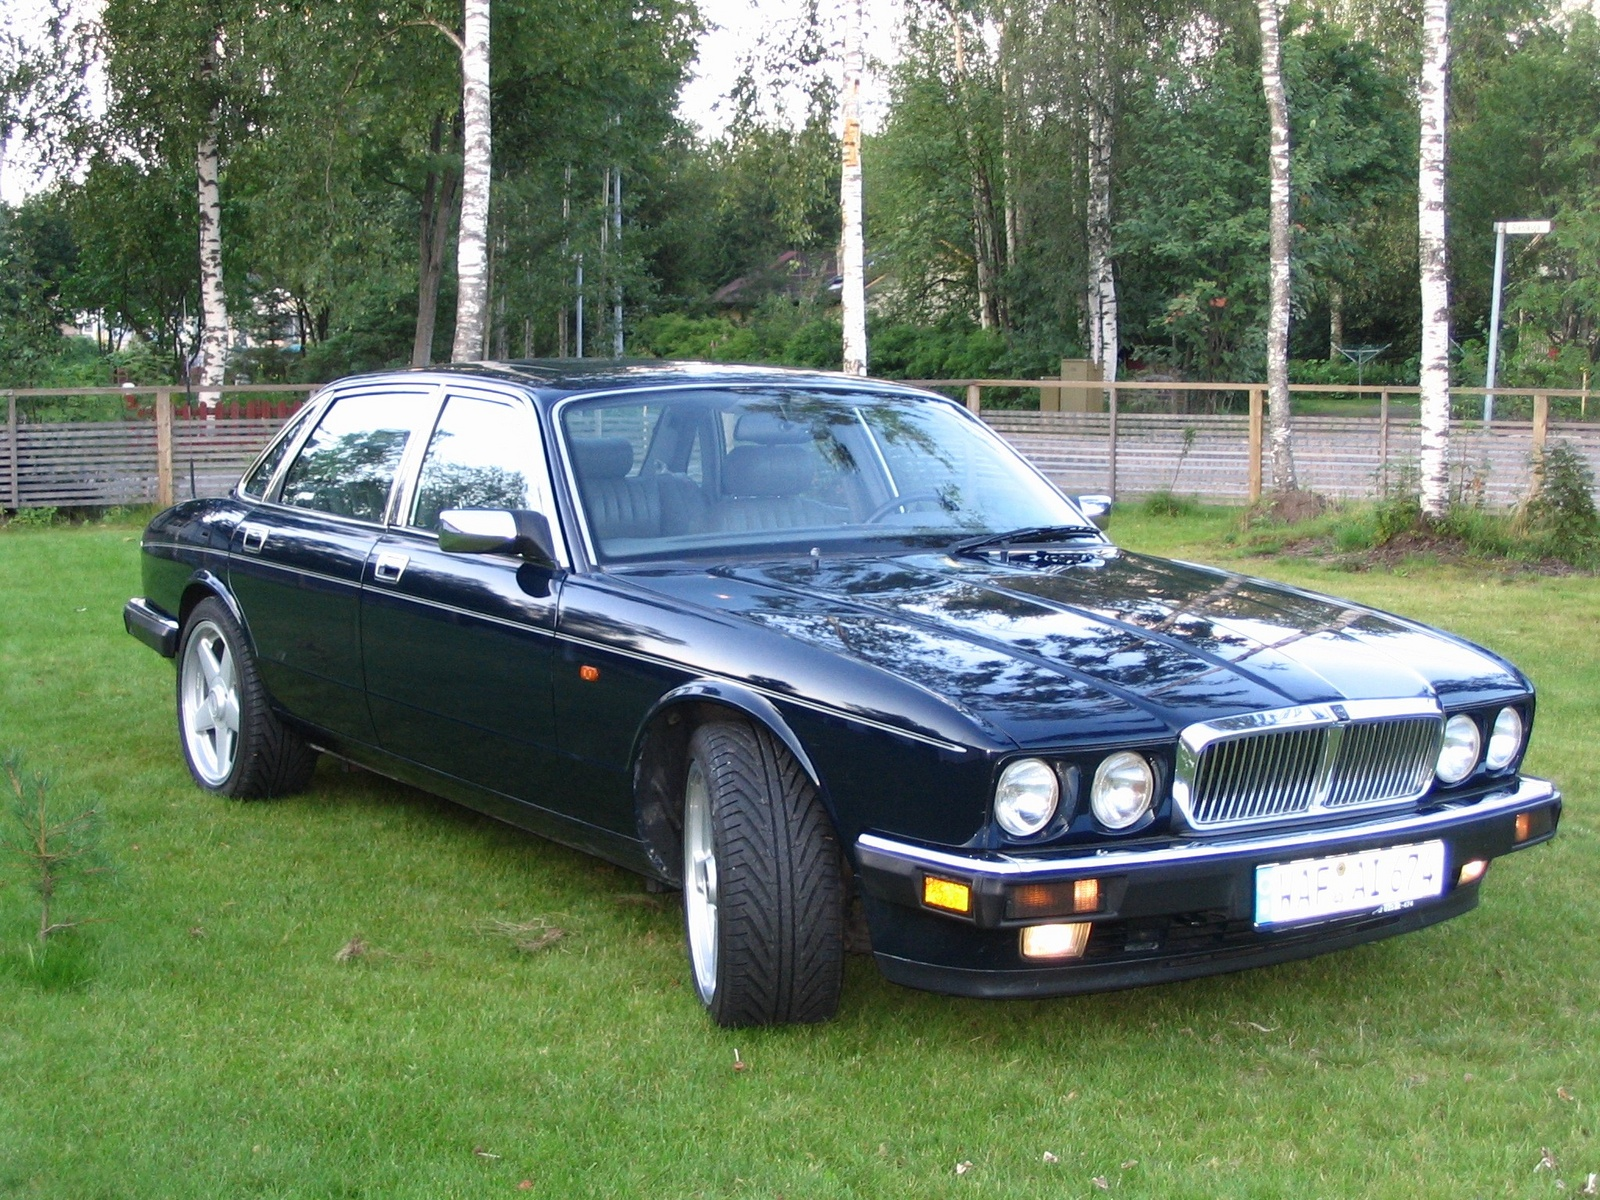 1994 Jaguar Xj-series #2